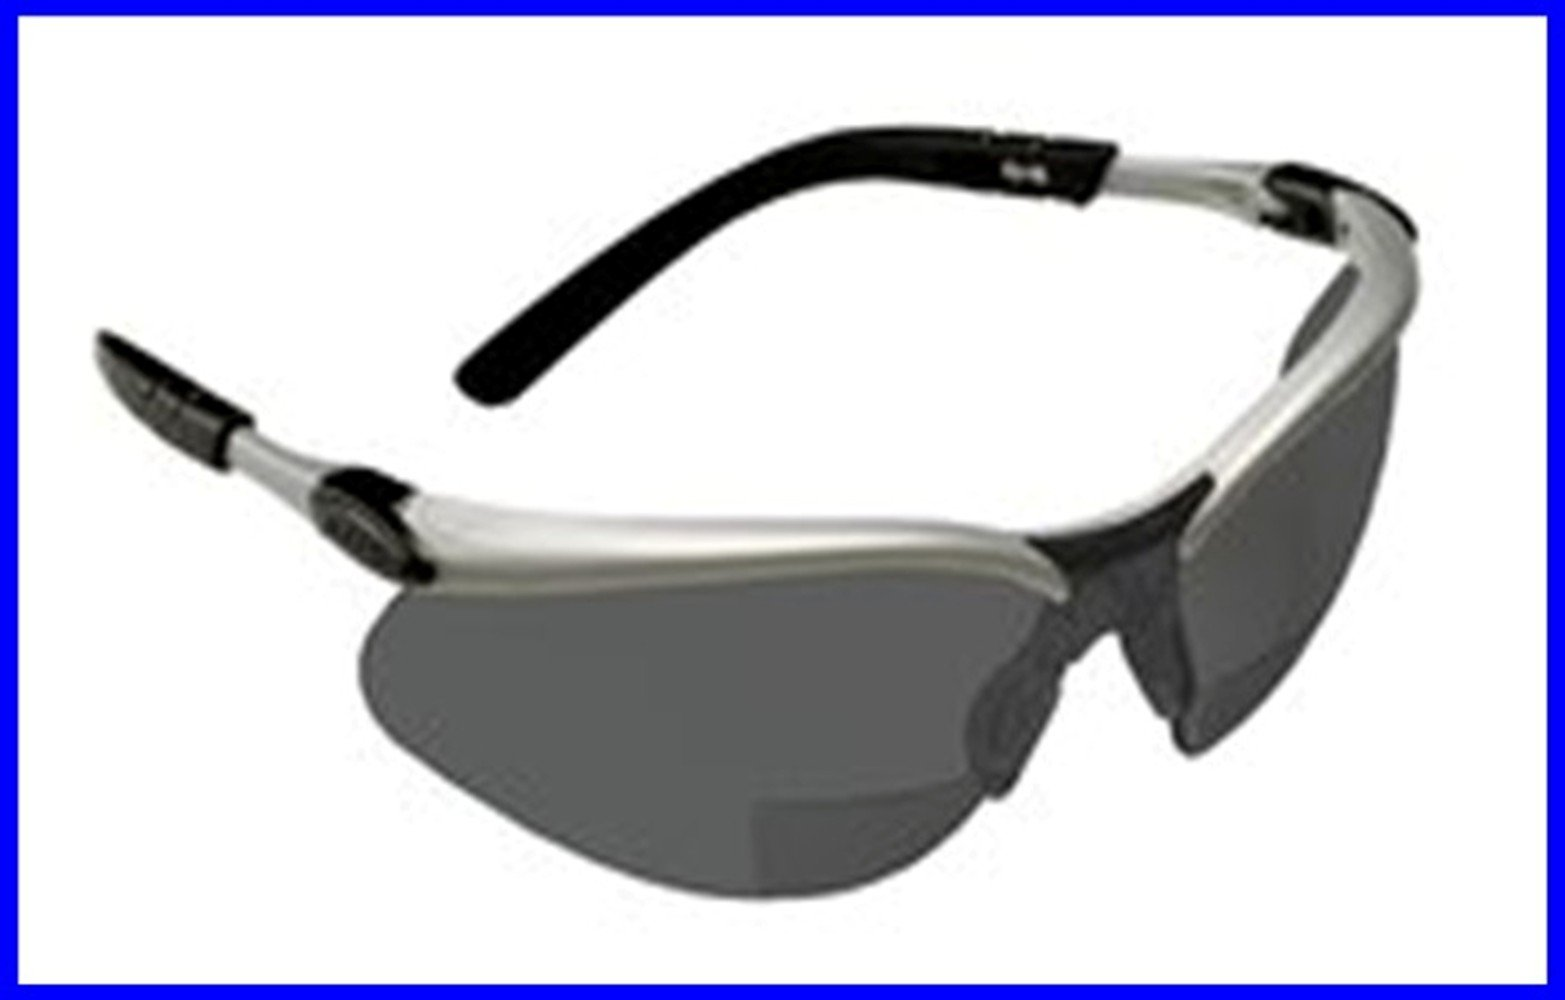 3M BX Reader, 2.5 Diopter Safety Glasses, Tinted, Anti-Fog UV Absorbing Polycarbonate Lenses, Wraparound Unopstructed Viewing Range (1 pair)